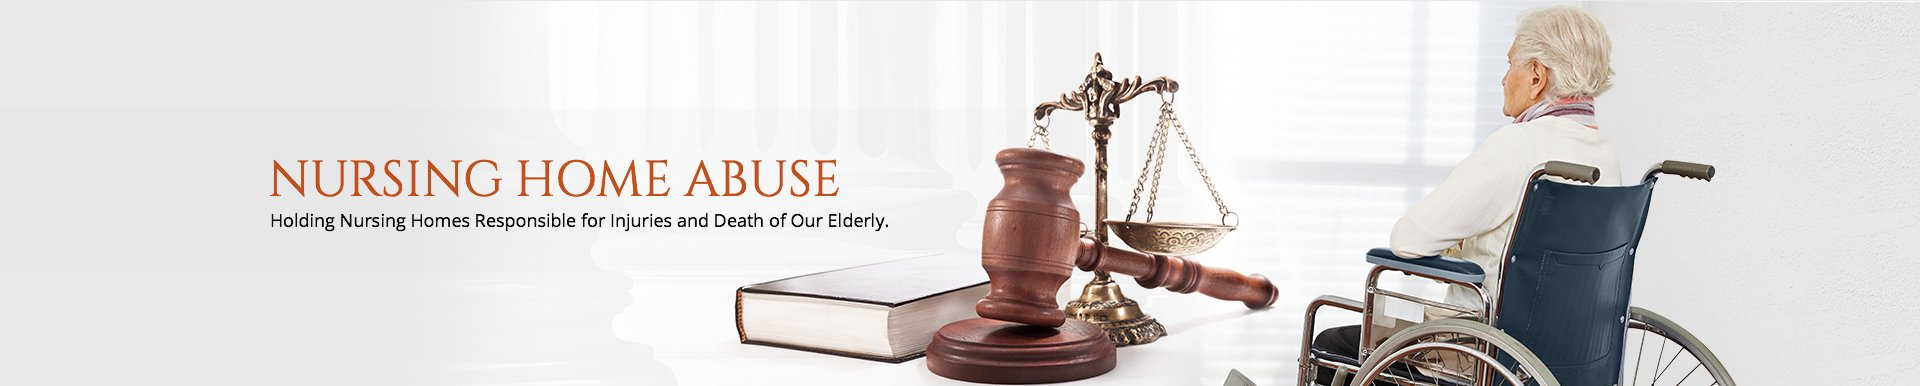 the causes of nursing home abuse essay 1 what are the causes of nursing home neglect and abuse many instances of nursing home neglect and abuse have been attributed to under qualified and inexperienced staff.